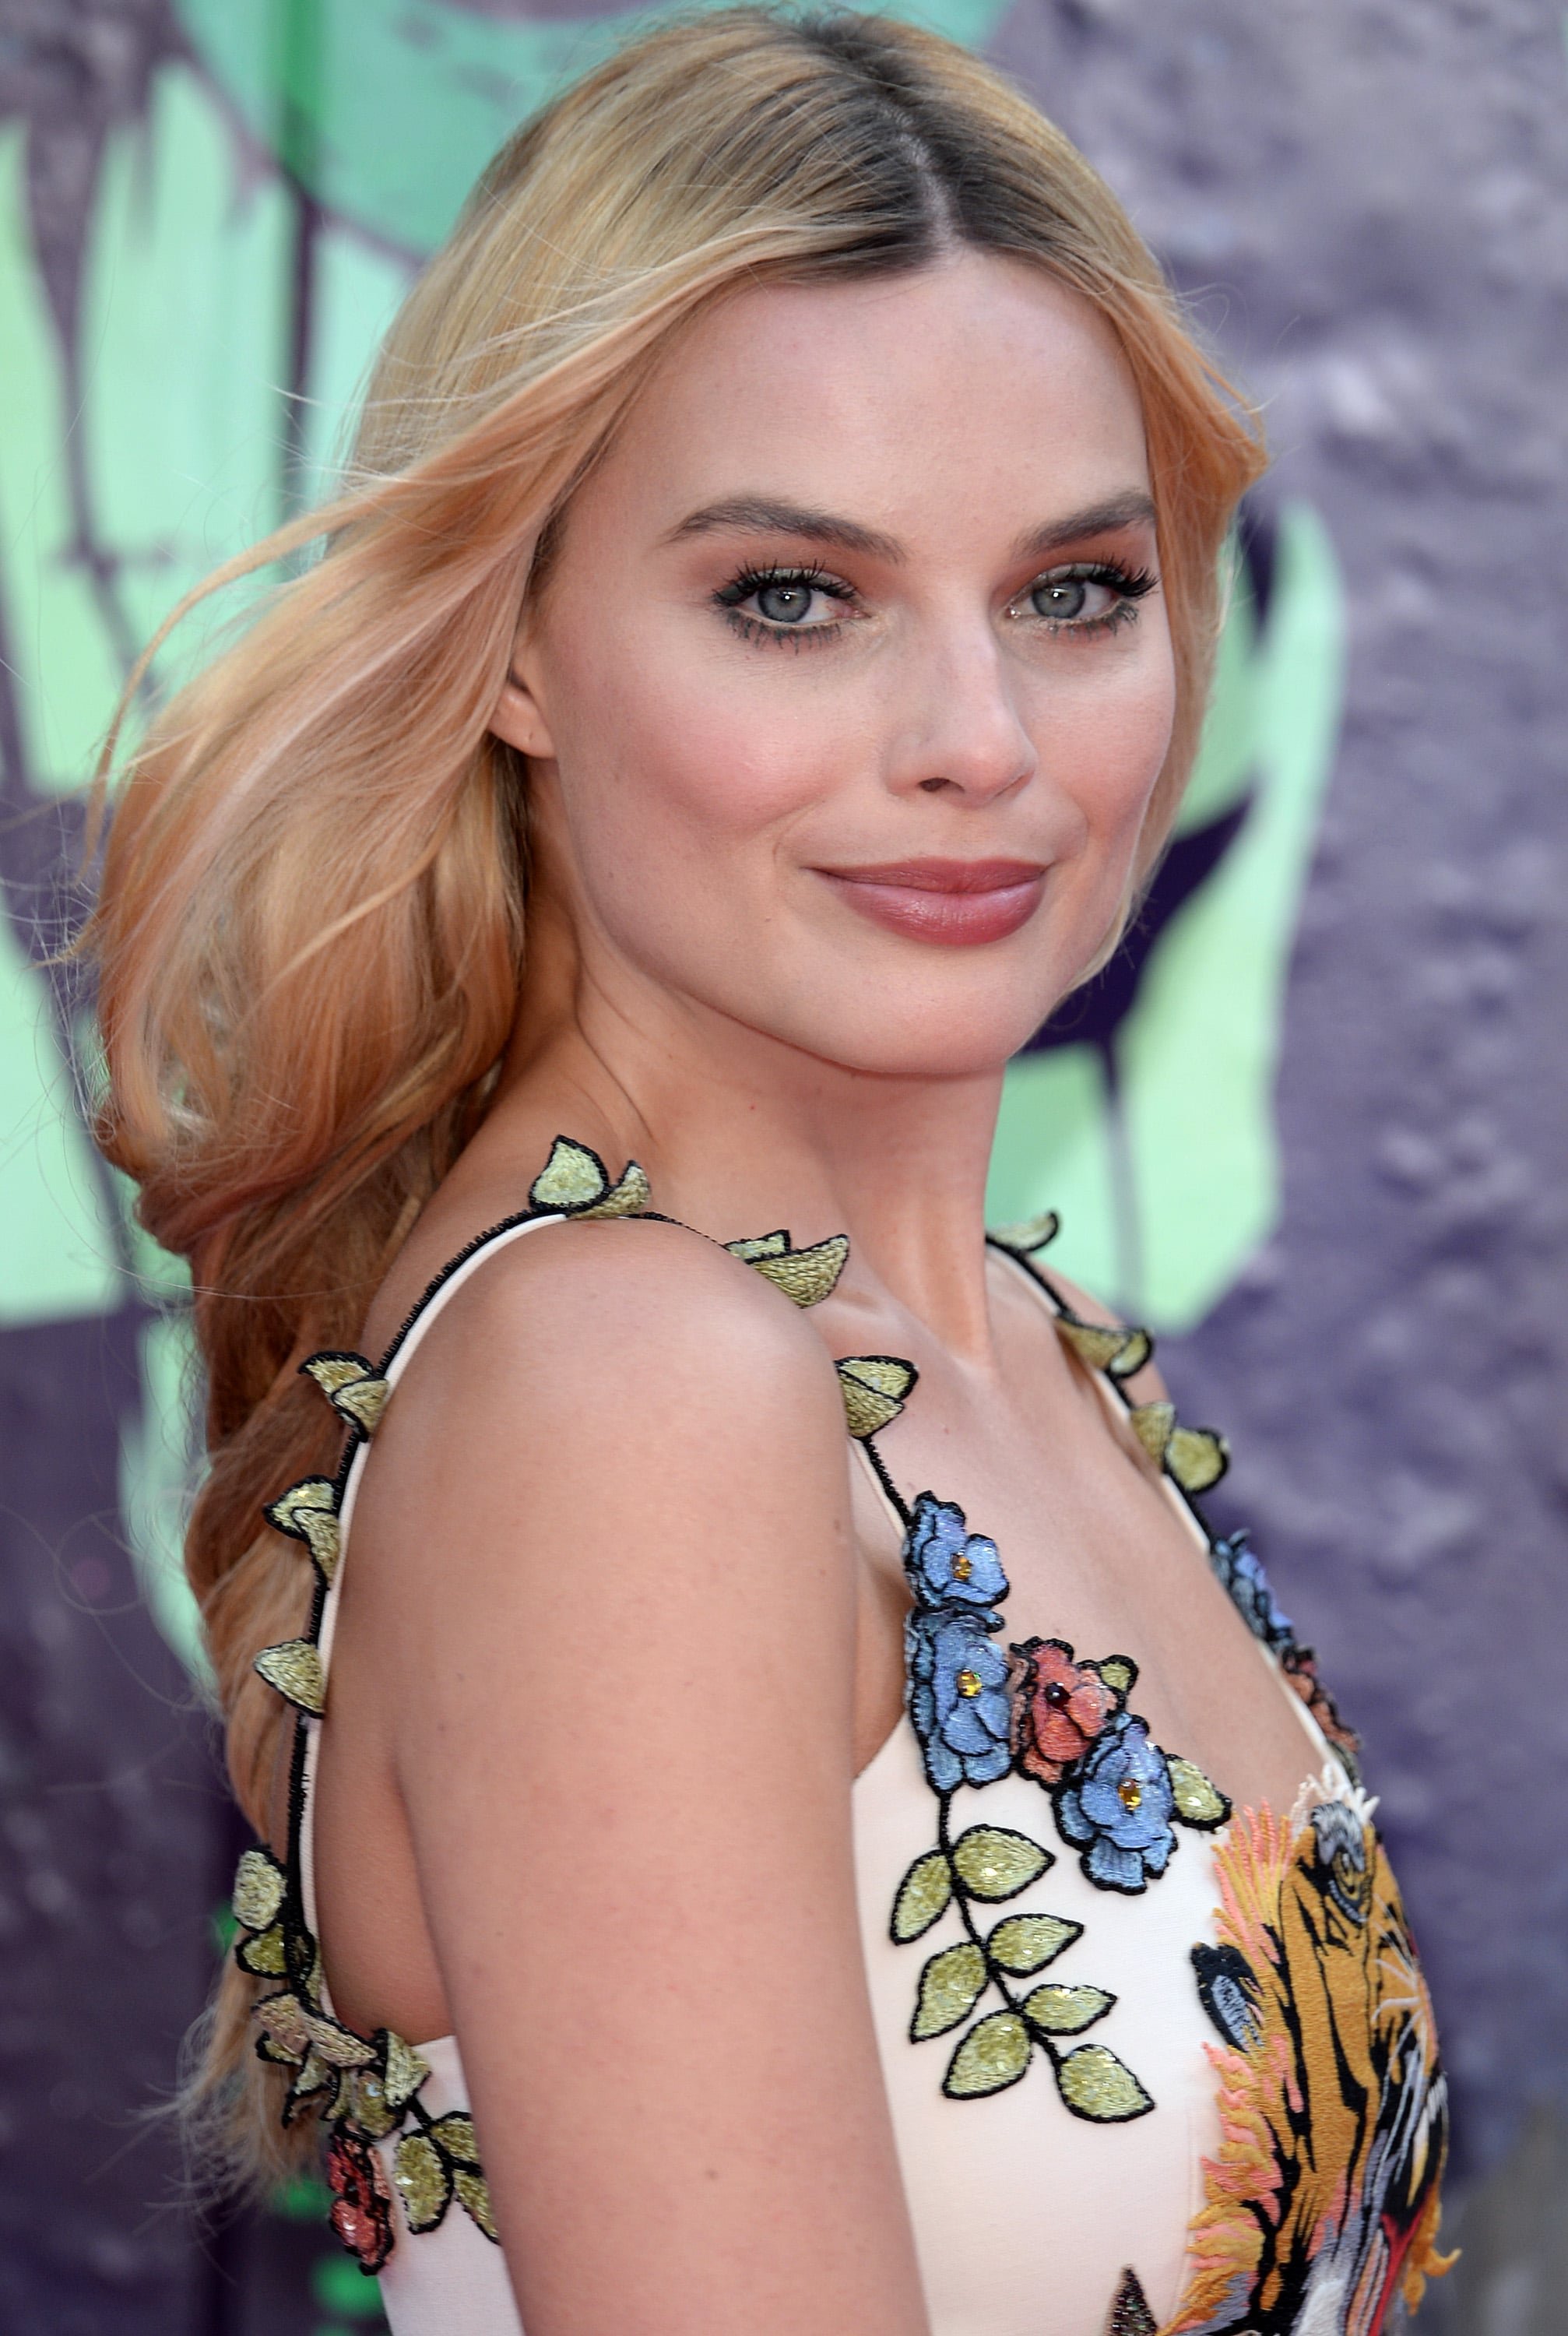 Rose Gold Blond 10 Top Hair Color Trends To Try Before